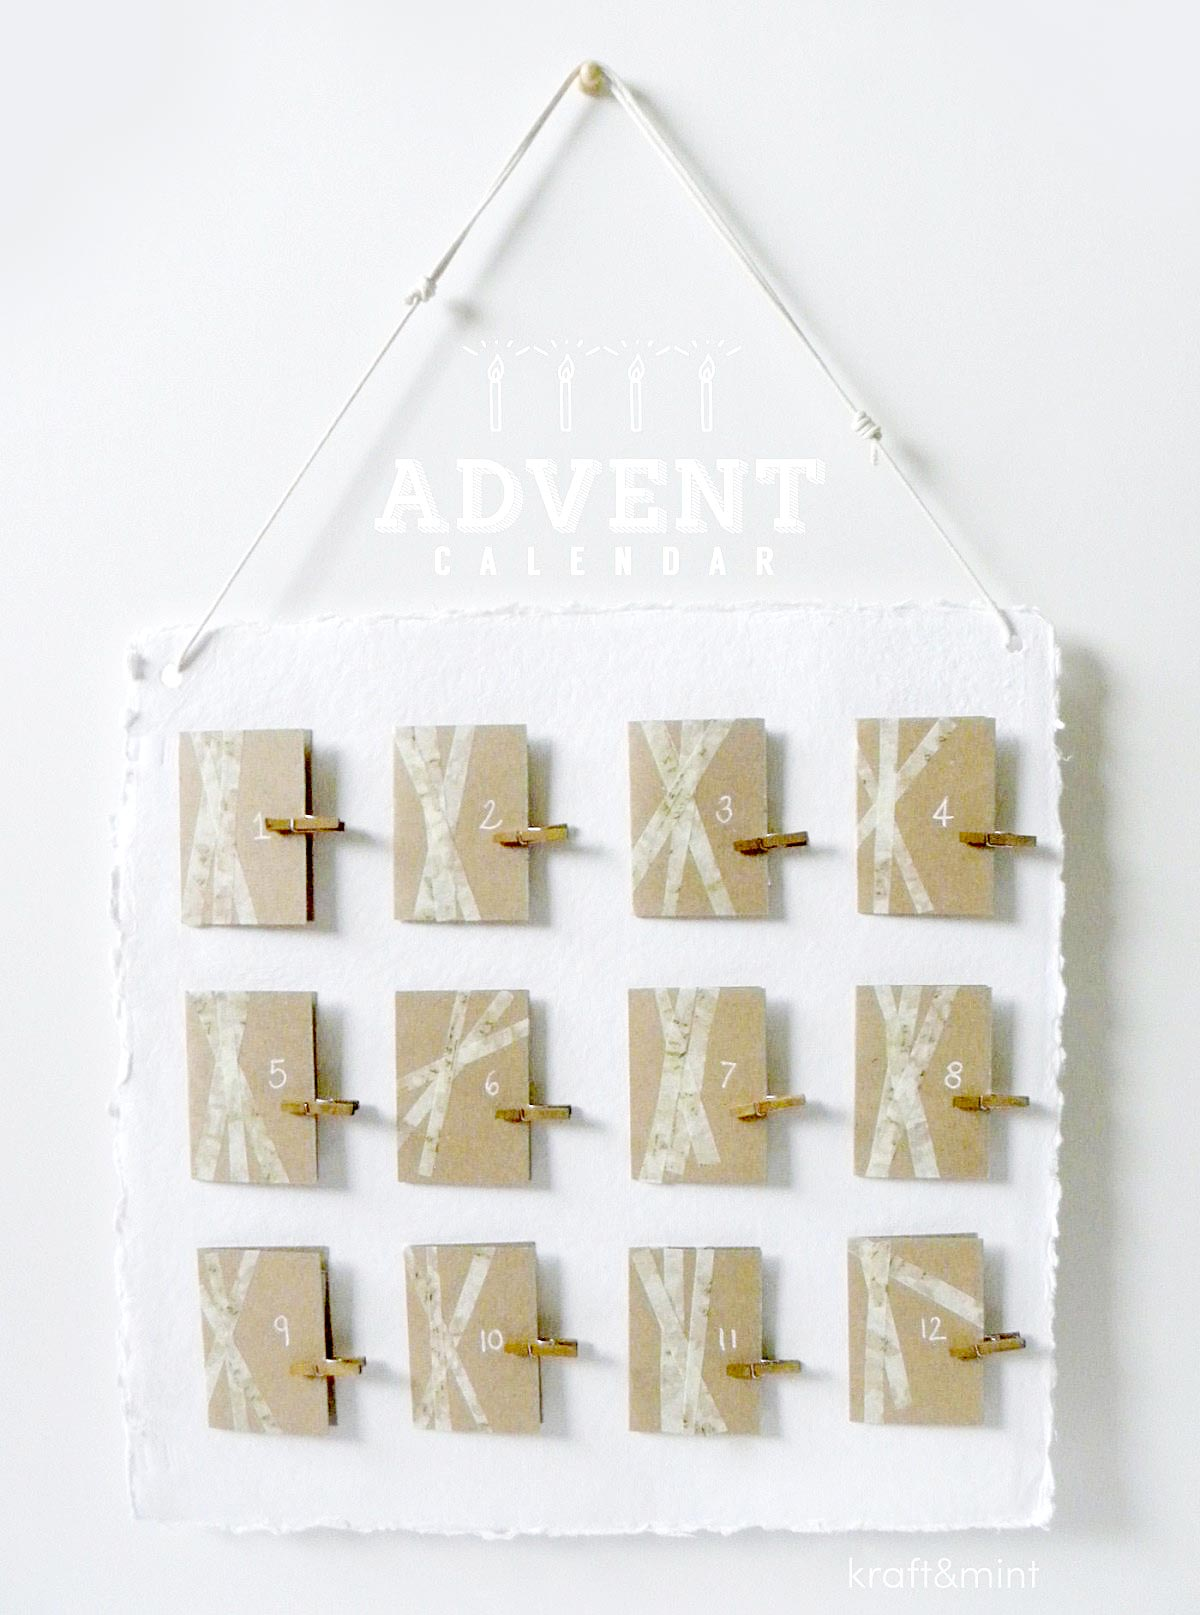 Crafts: Advent Calendar Made Simple